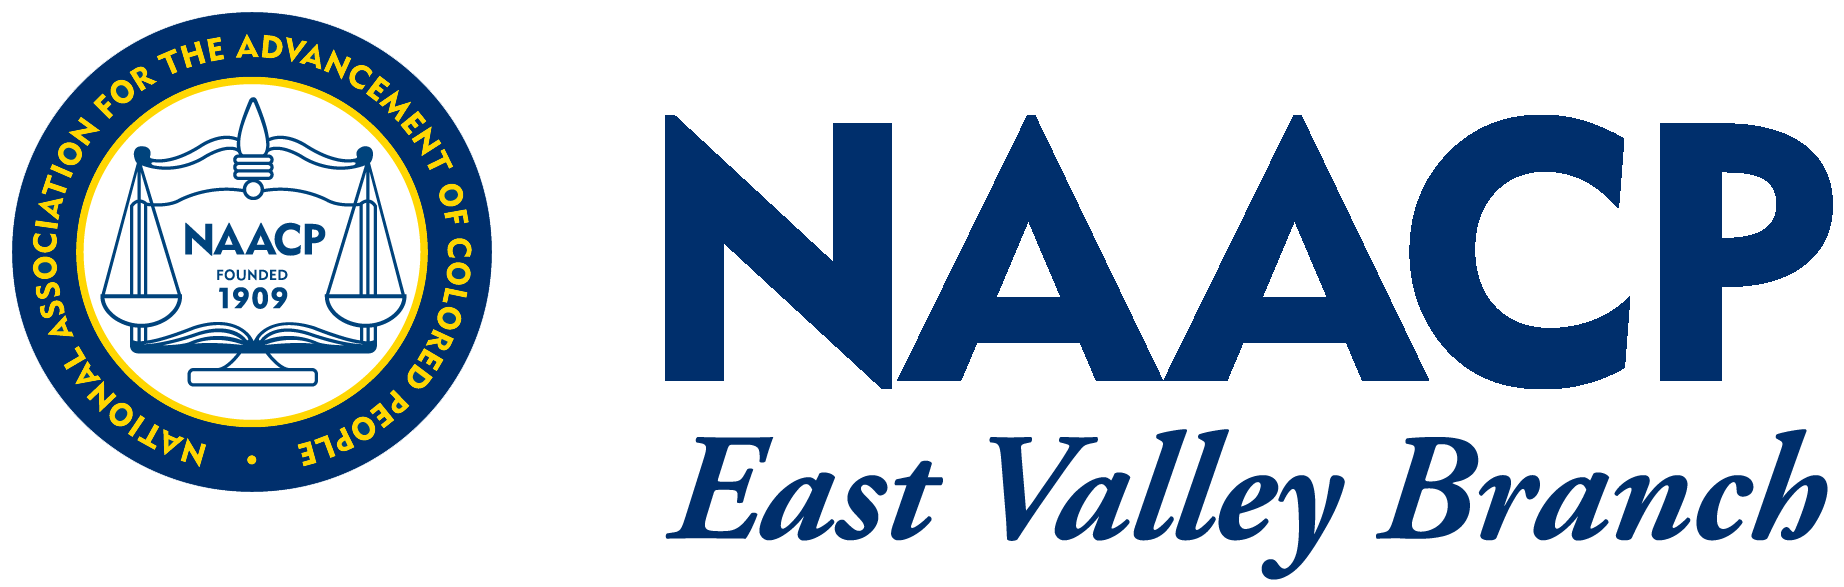 East Valley NAACP